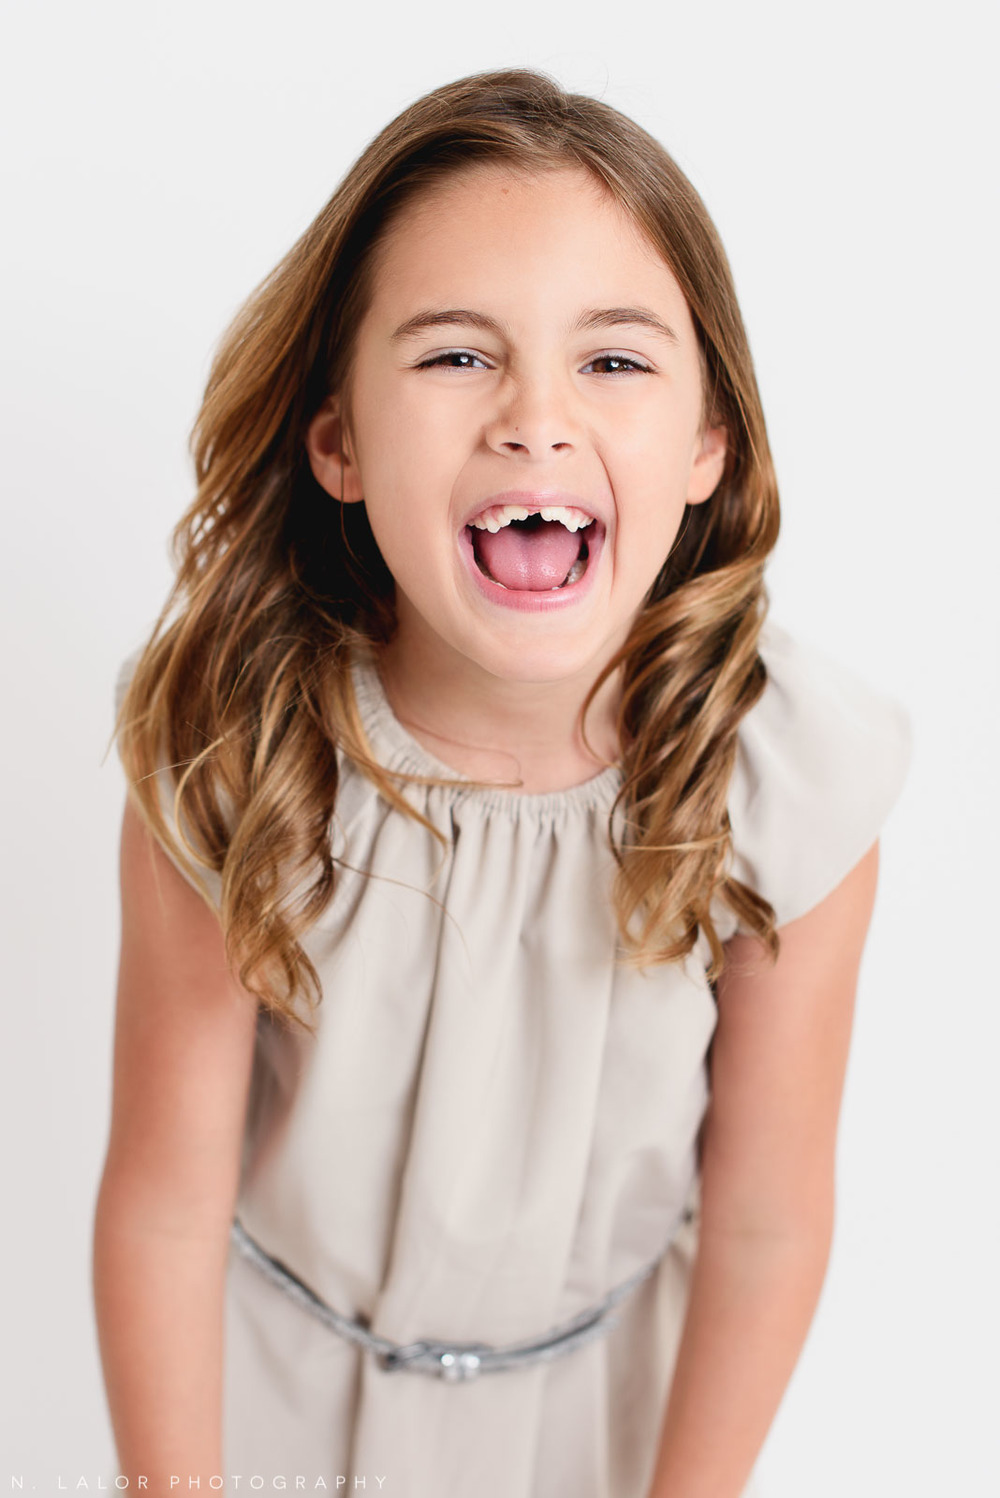 Laughs. Editorial studio portrait of 6-year old girl by N. Lalor Photography in Greenwich, Connecticut.